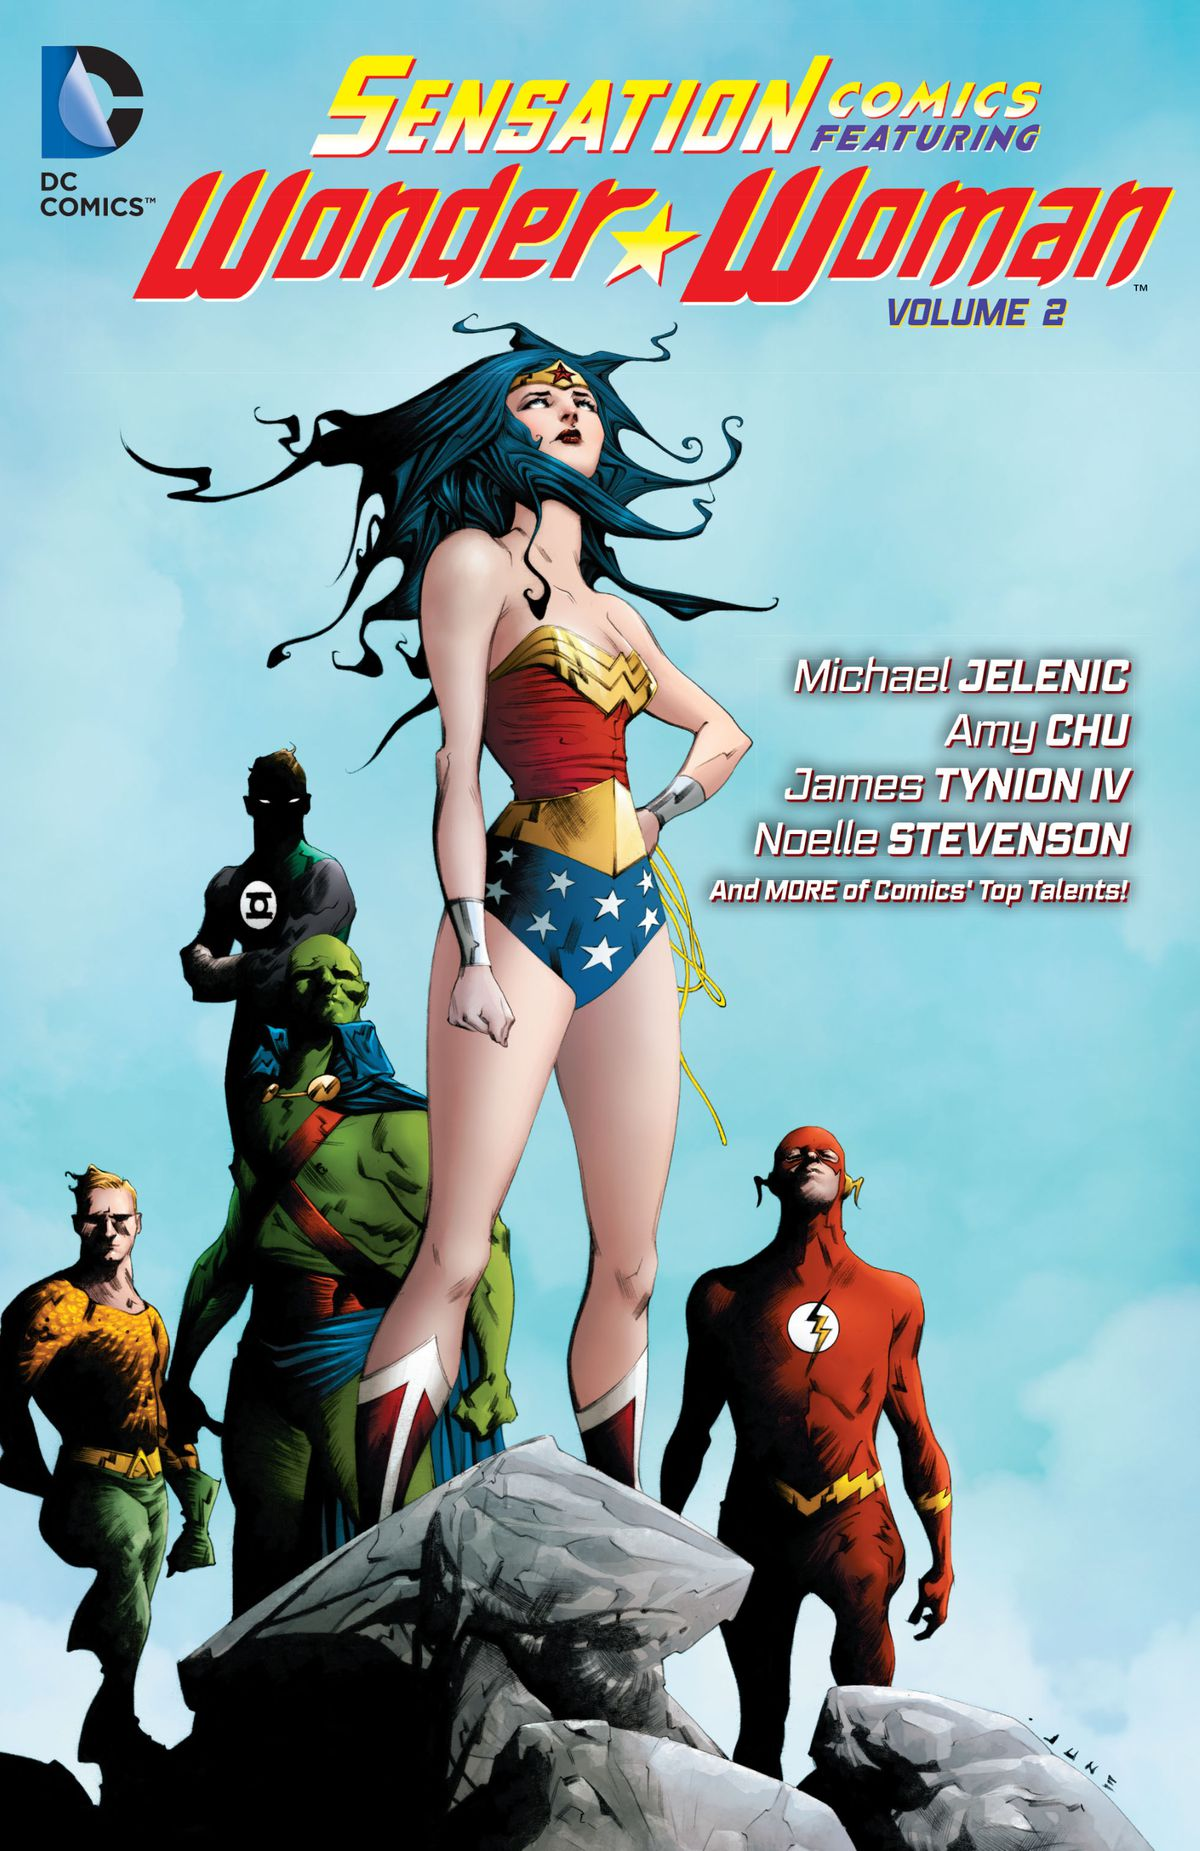 Wonder Woman stands with Green Lantern, Aquaman, the Martian Manhunter, and the Flash behind her on the cover of Sensation Comics Featuring Wonder Woman Vol. 2.